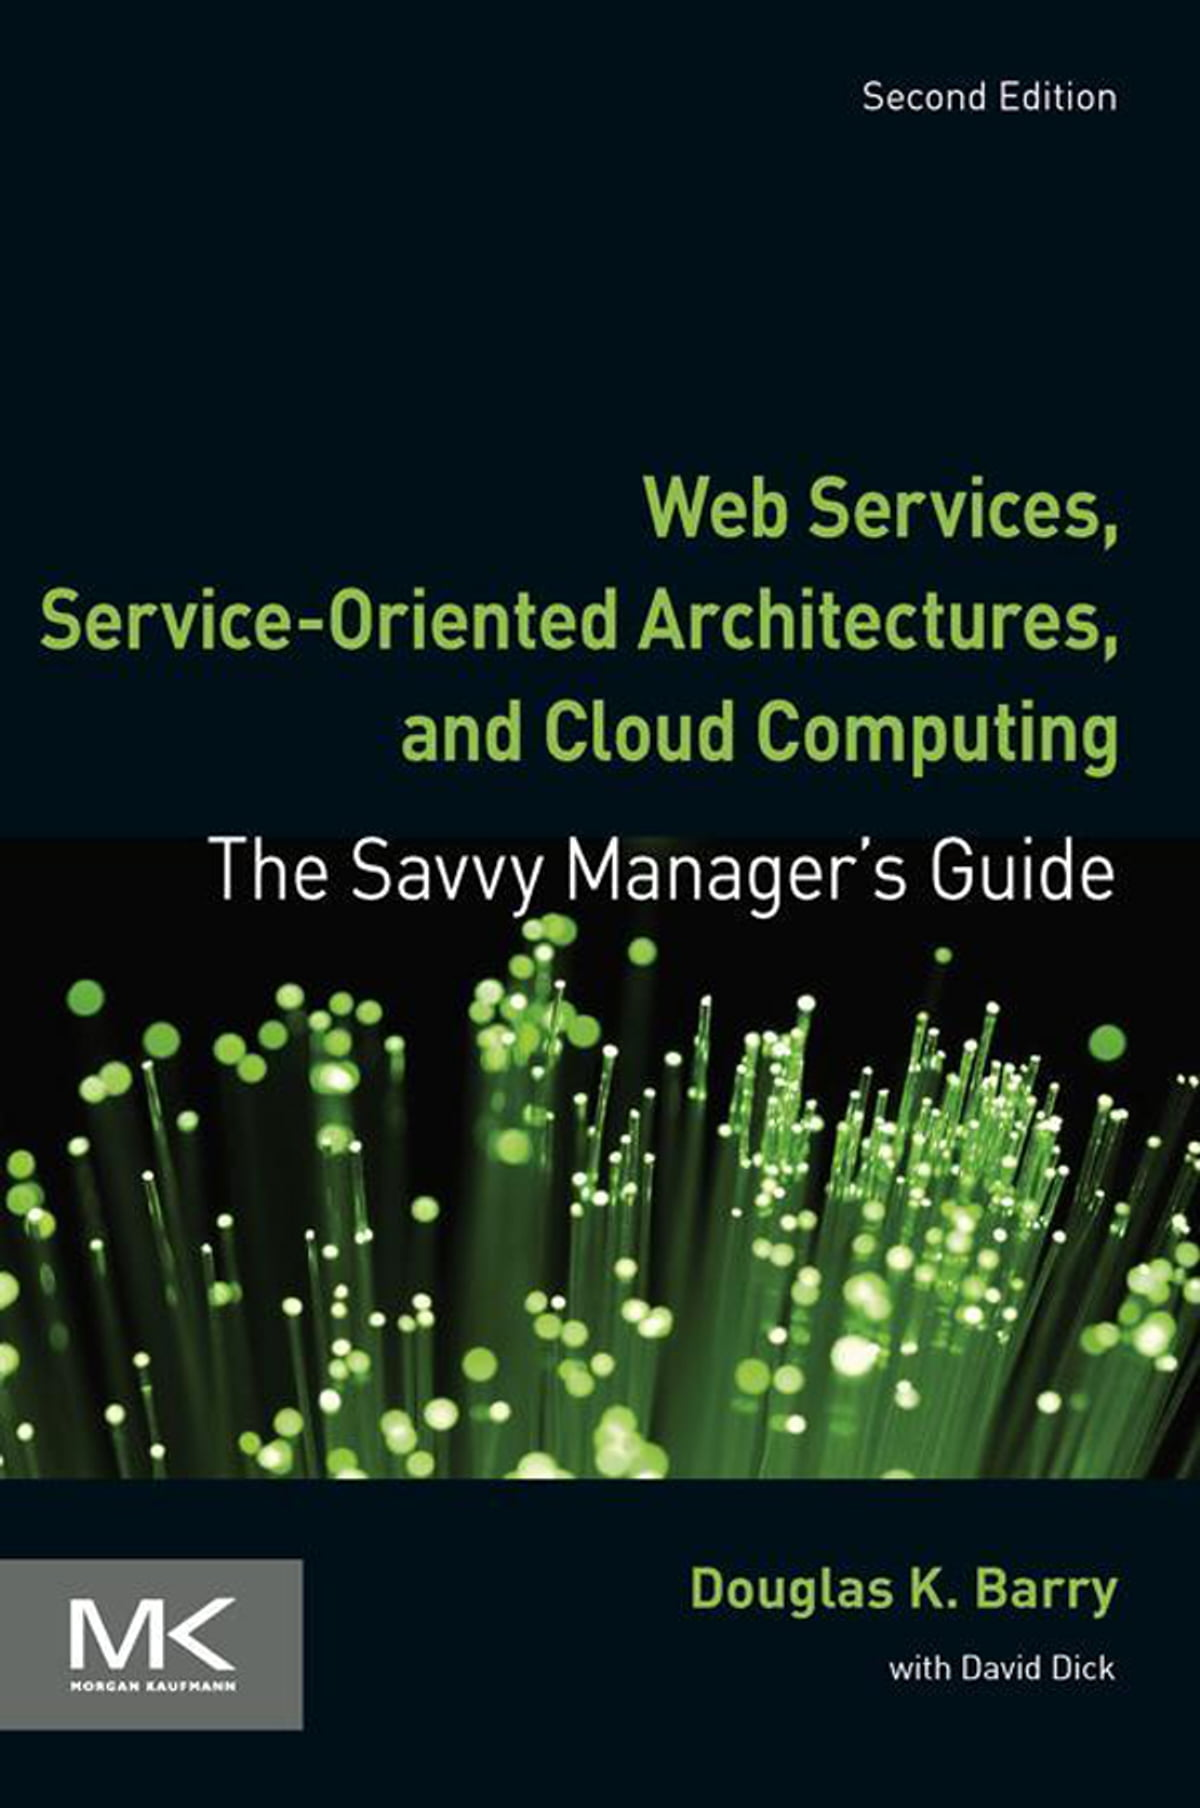 Web Services, Service-Oriented Architectures, and Cloud Computing eBook by  Douglas K. Barry - 9780124072008 | Rakuten Kobo